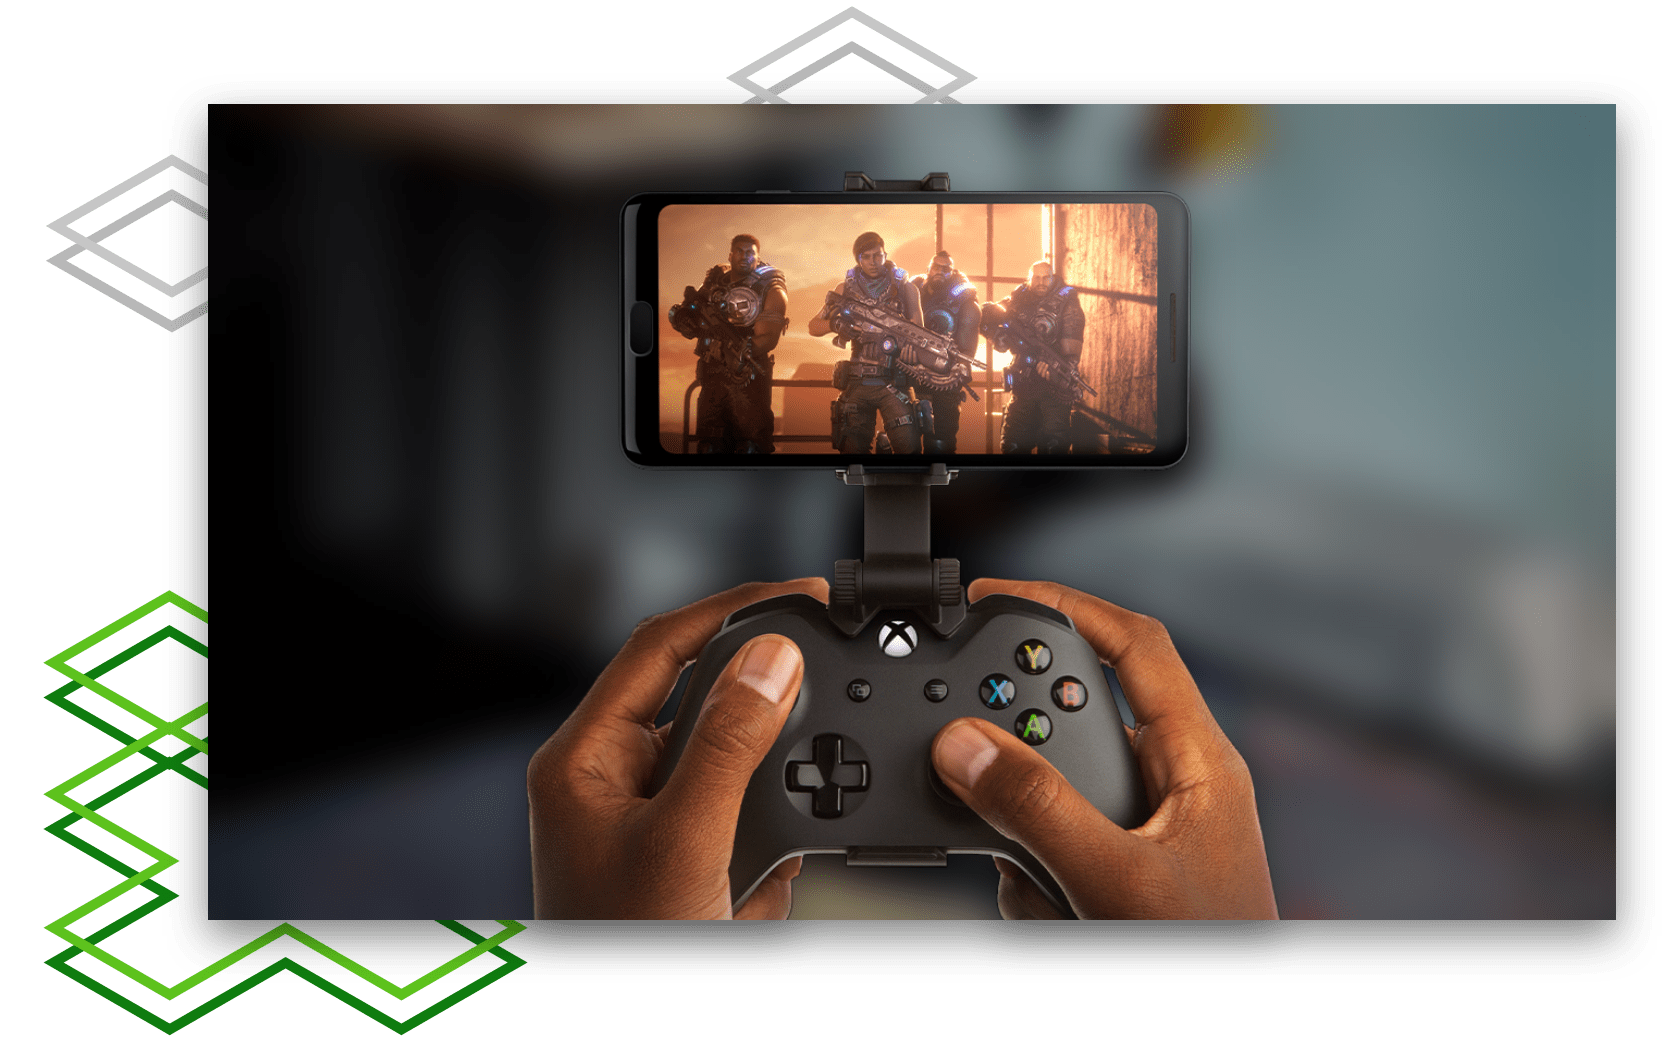 Playing Gears of War on a mobile device with an Xbox controller